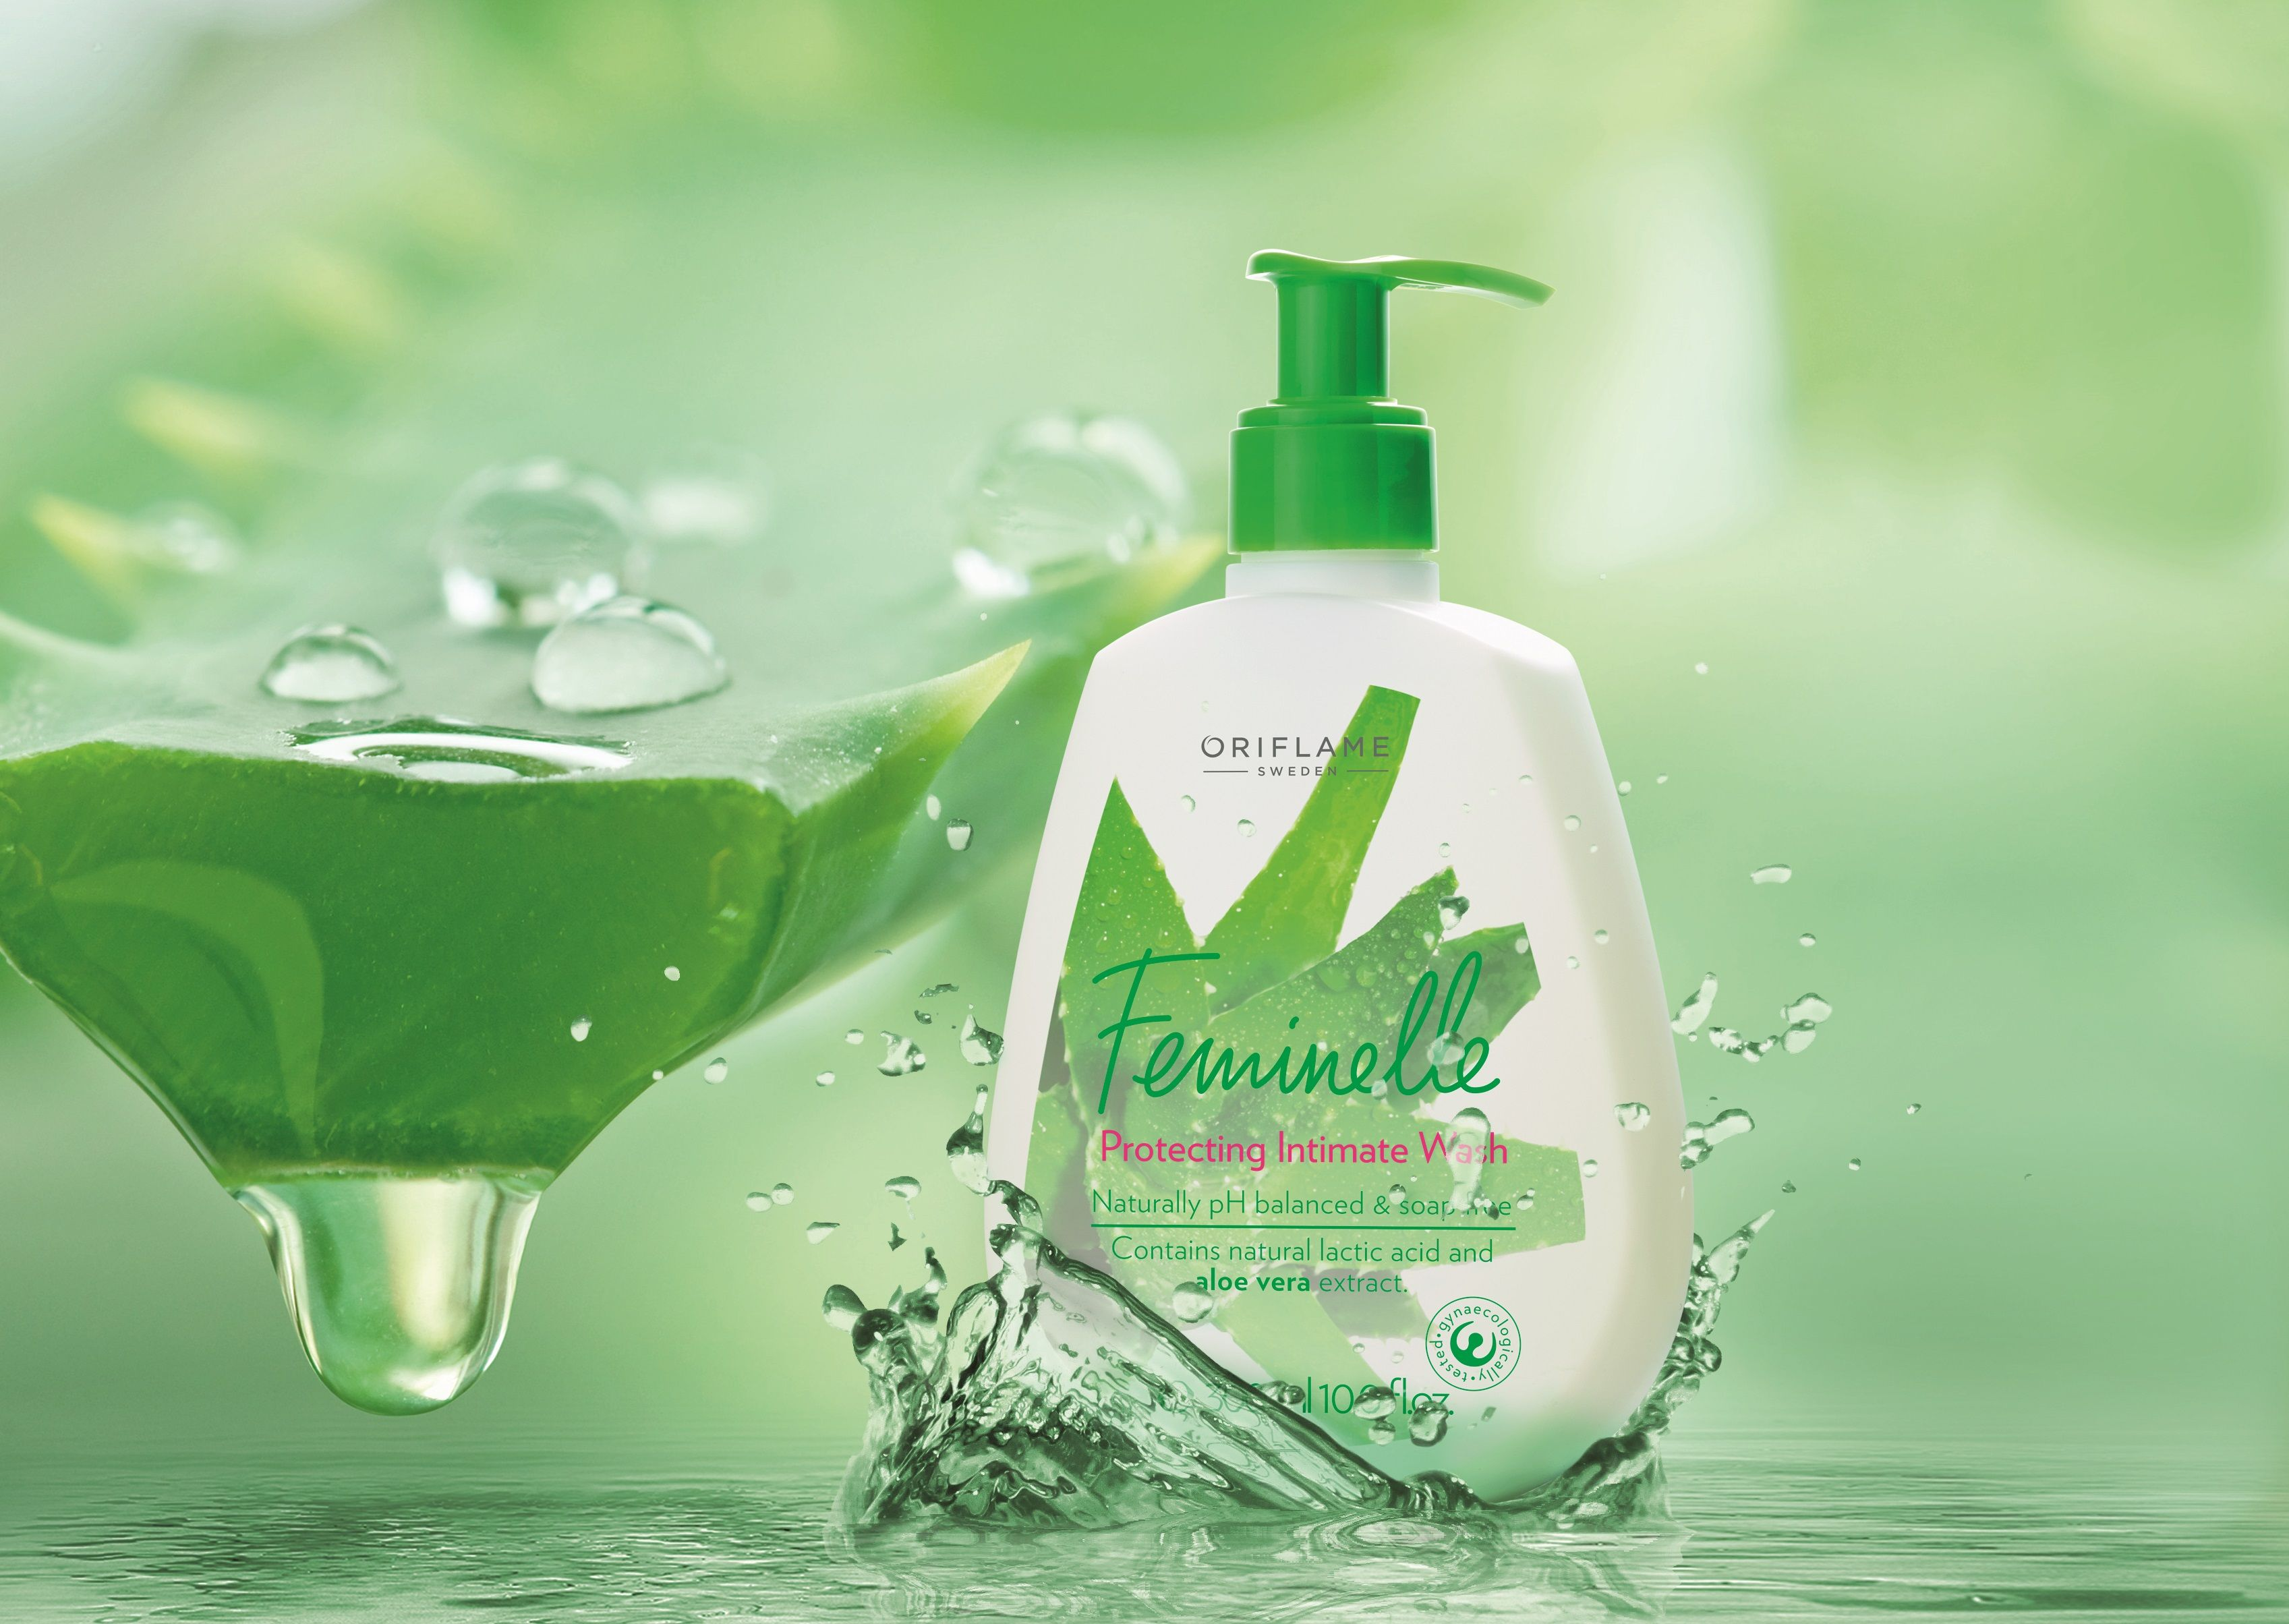 Oriflame Feminelle Protecting Intimate Wash with Aloe Vera ...